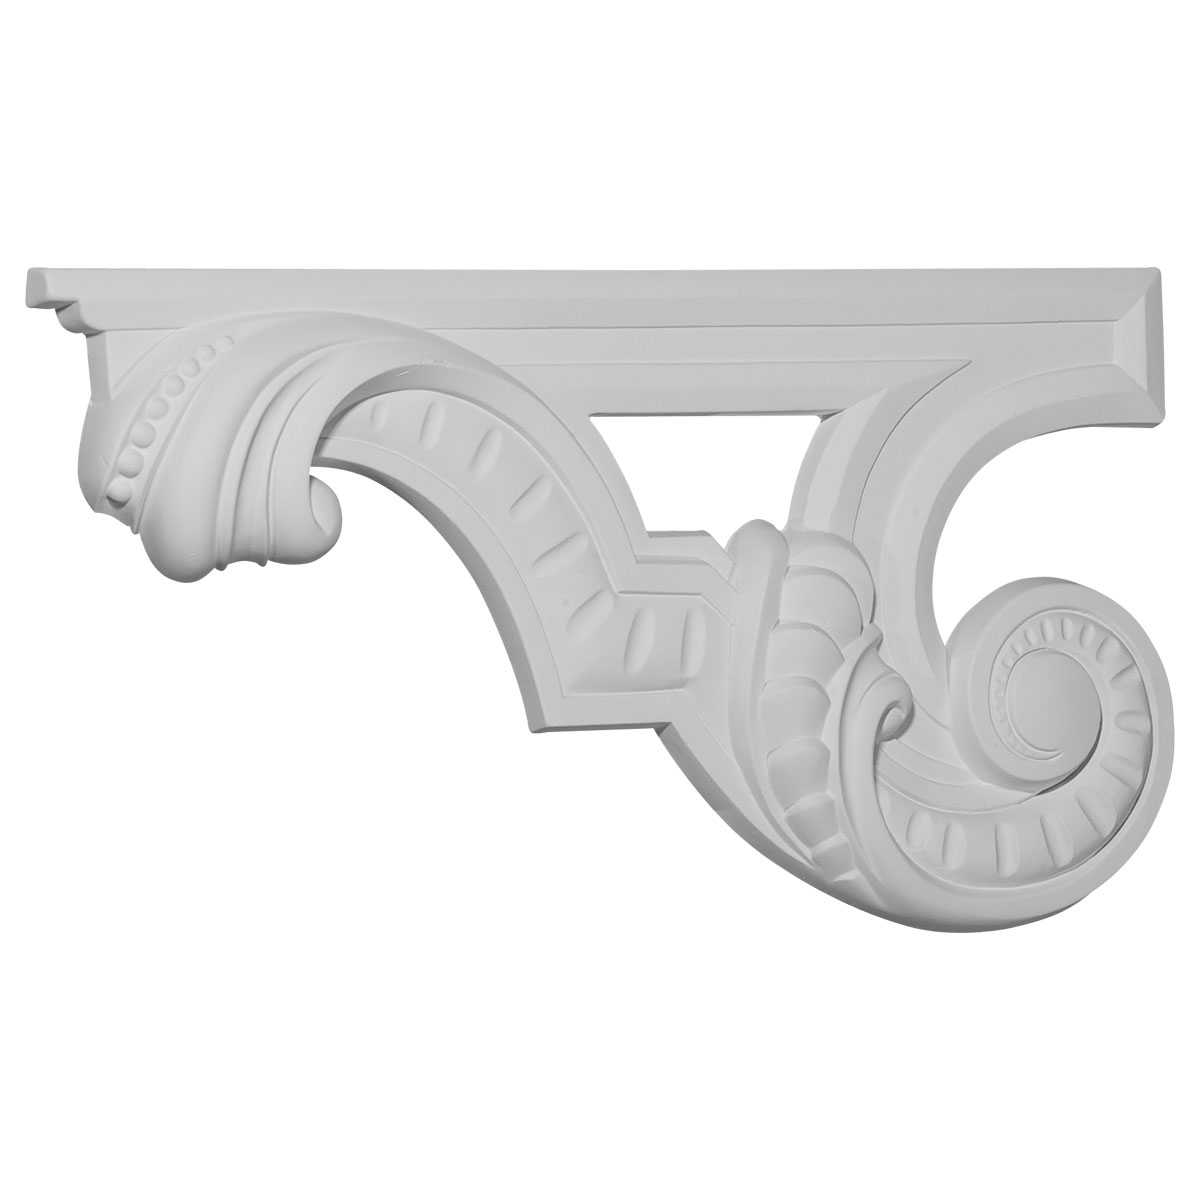 Ekena Millwork 6 5/8''H x 12 3/8''W x 3/4''D Scroll Stair Bracket